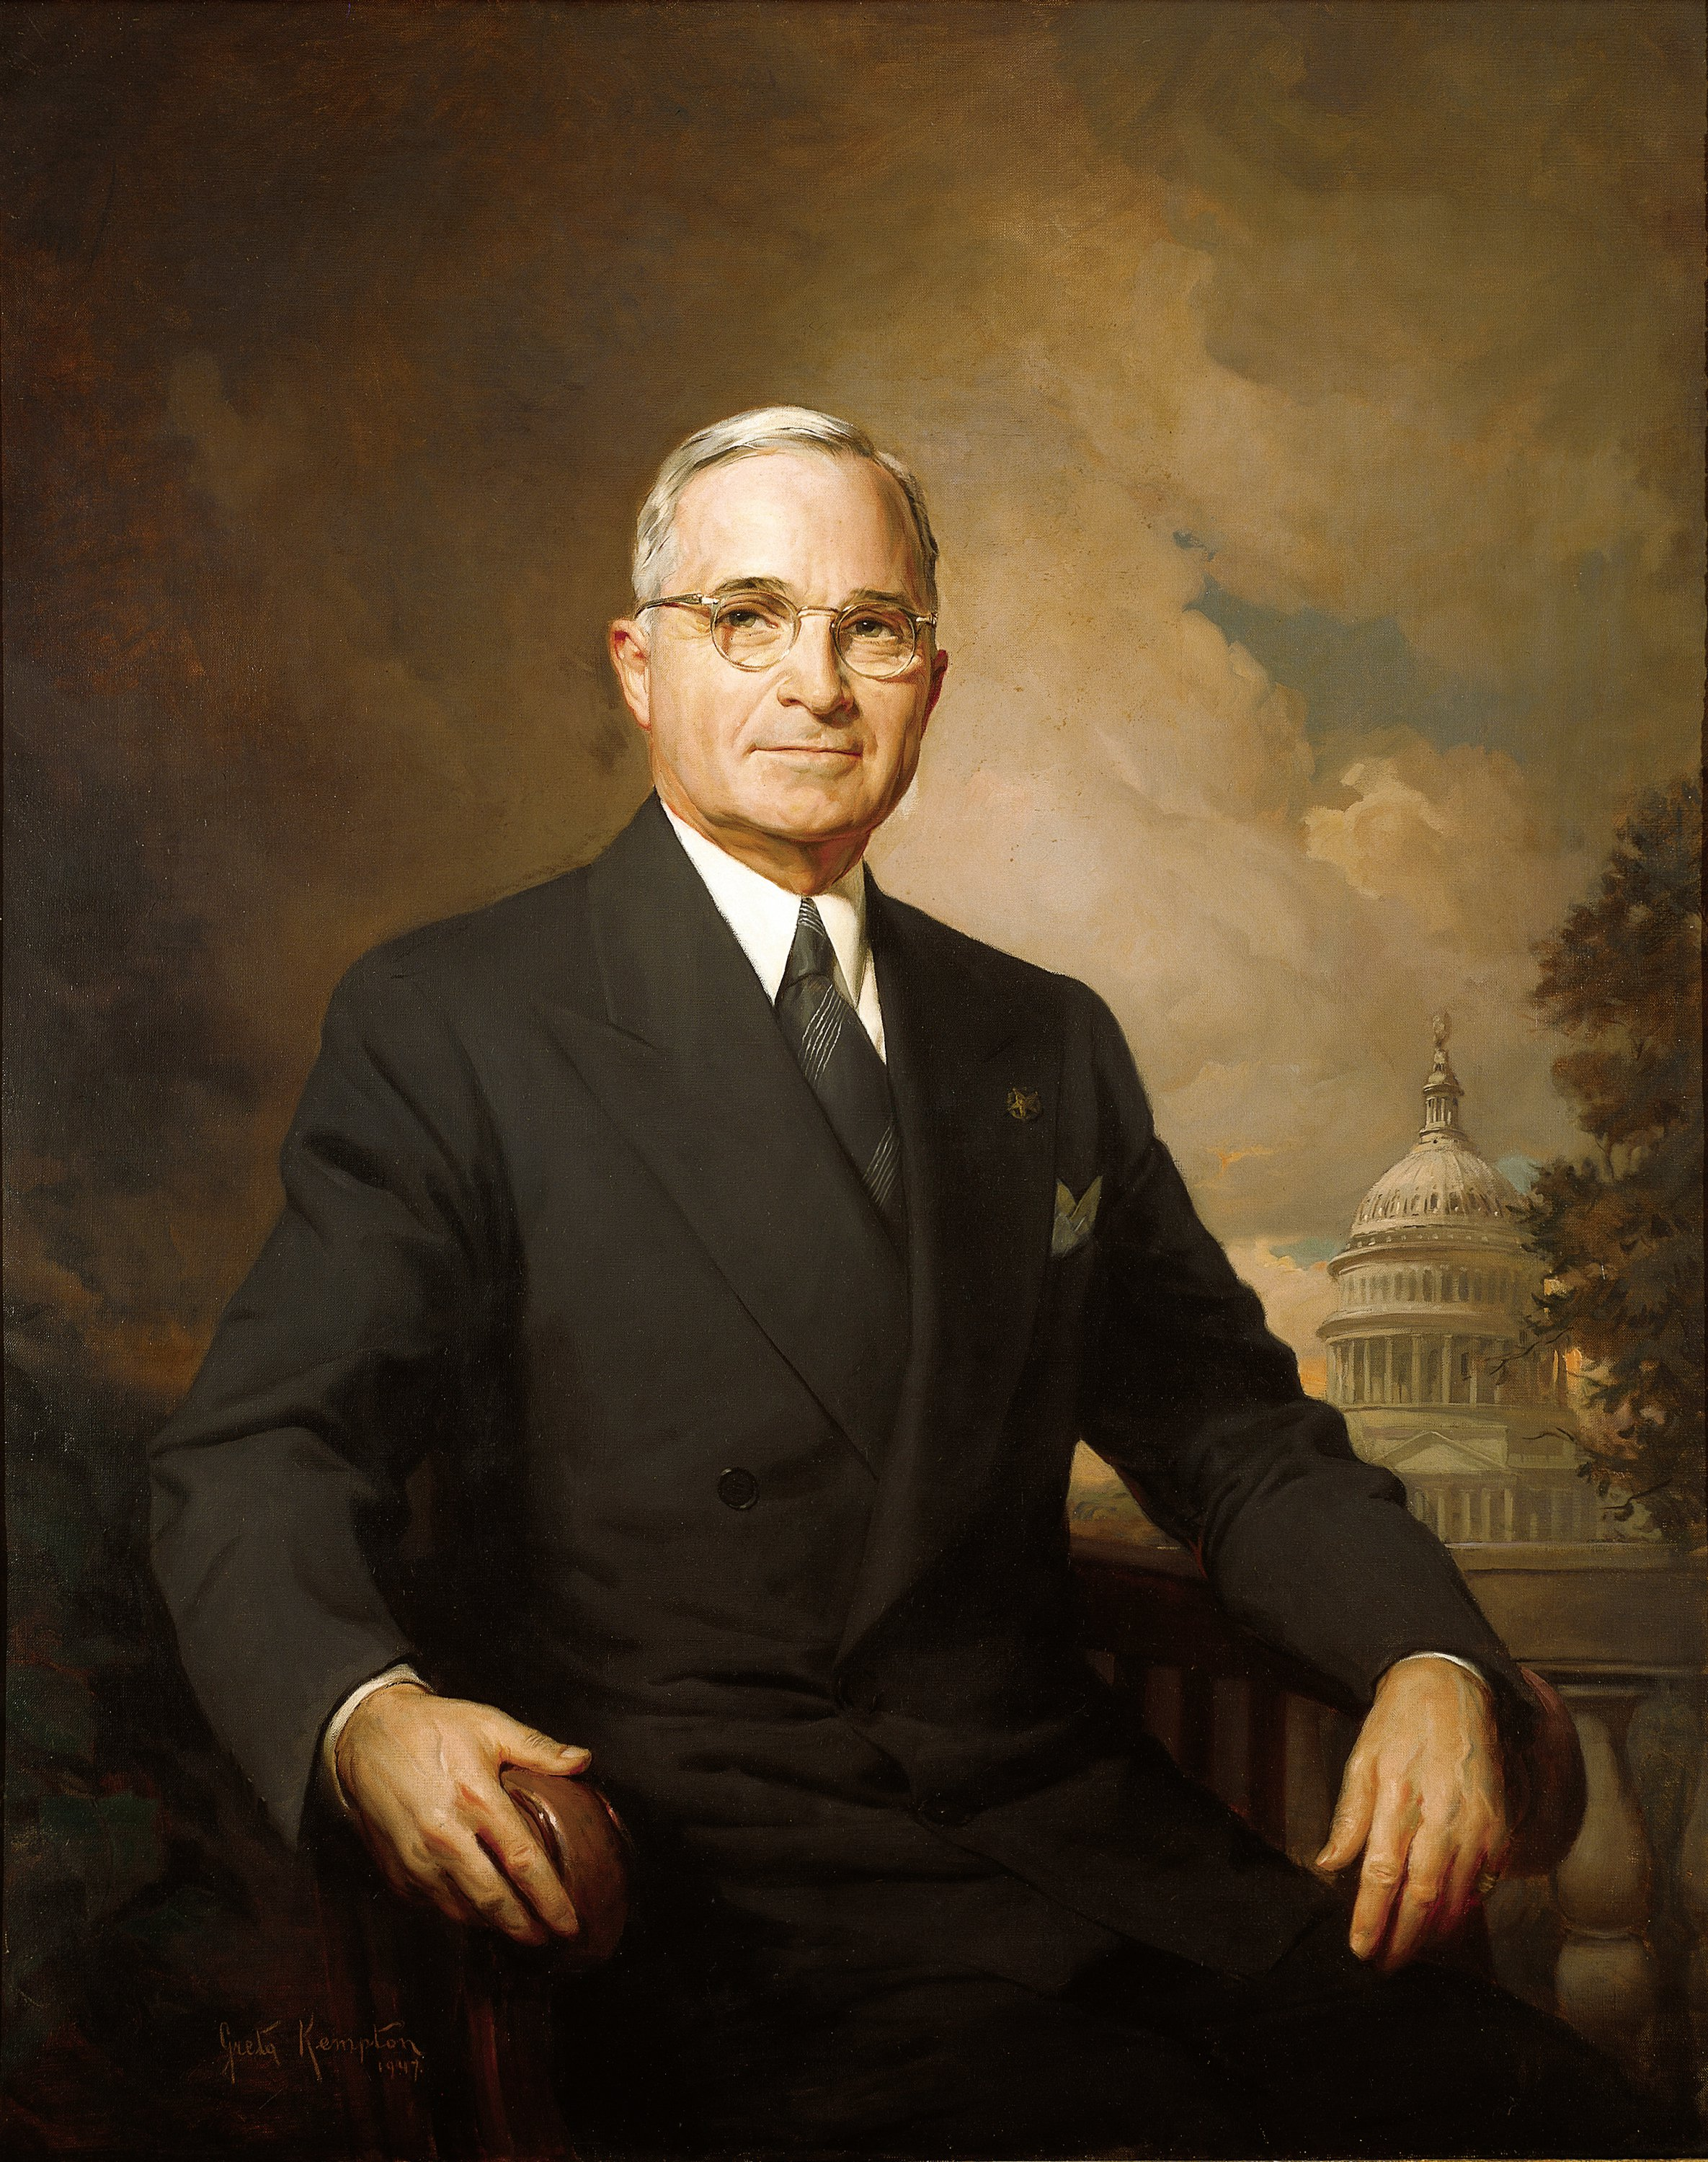 File:HarryTruman.jpg - Wikimedia Commons